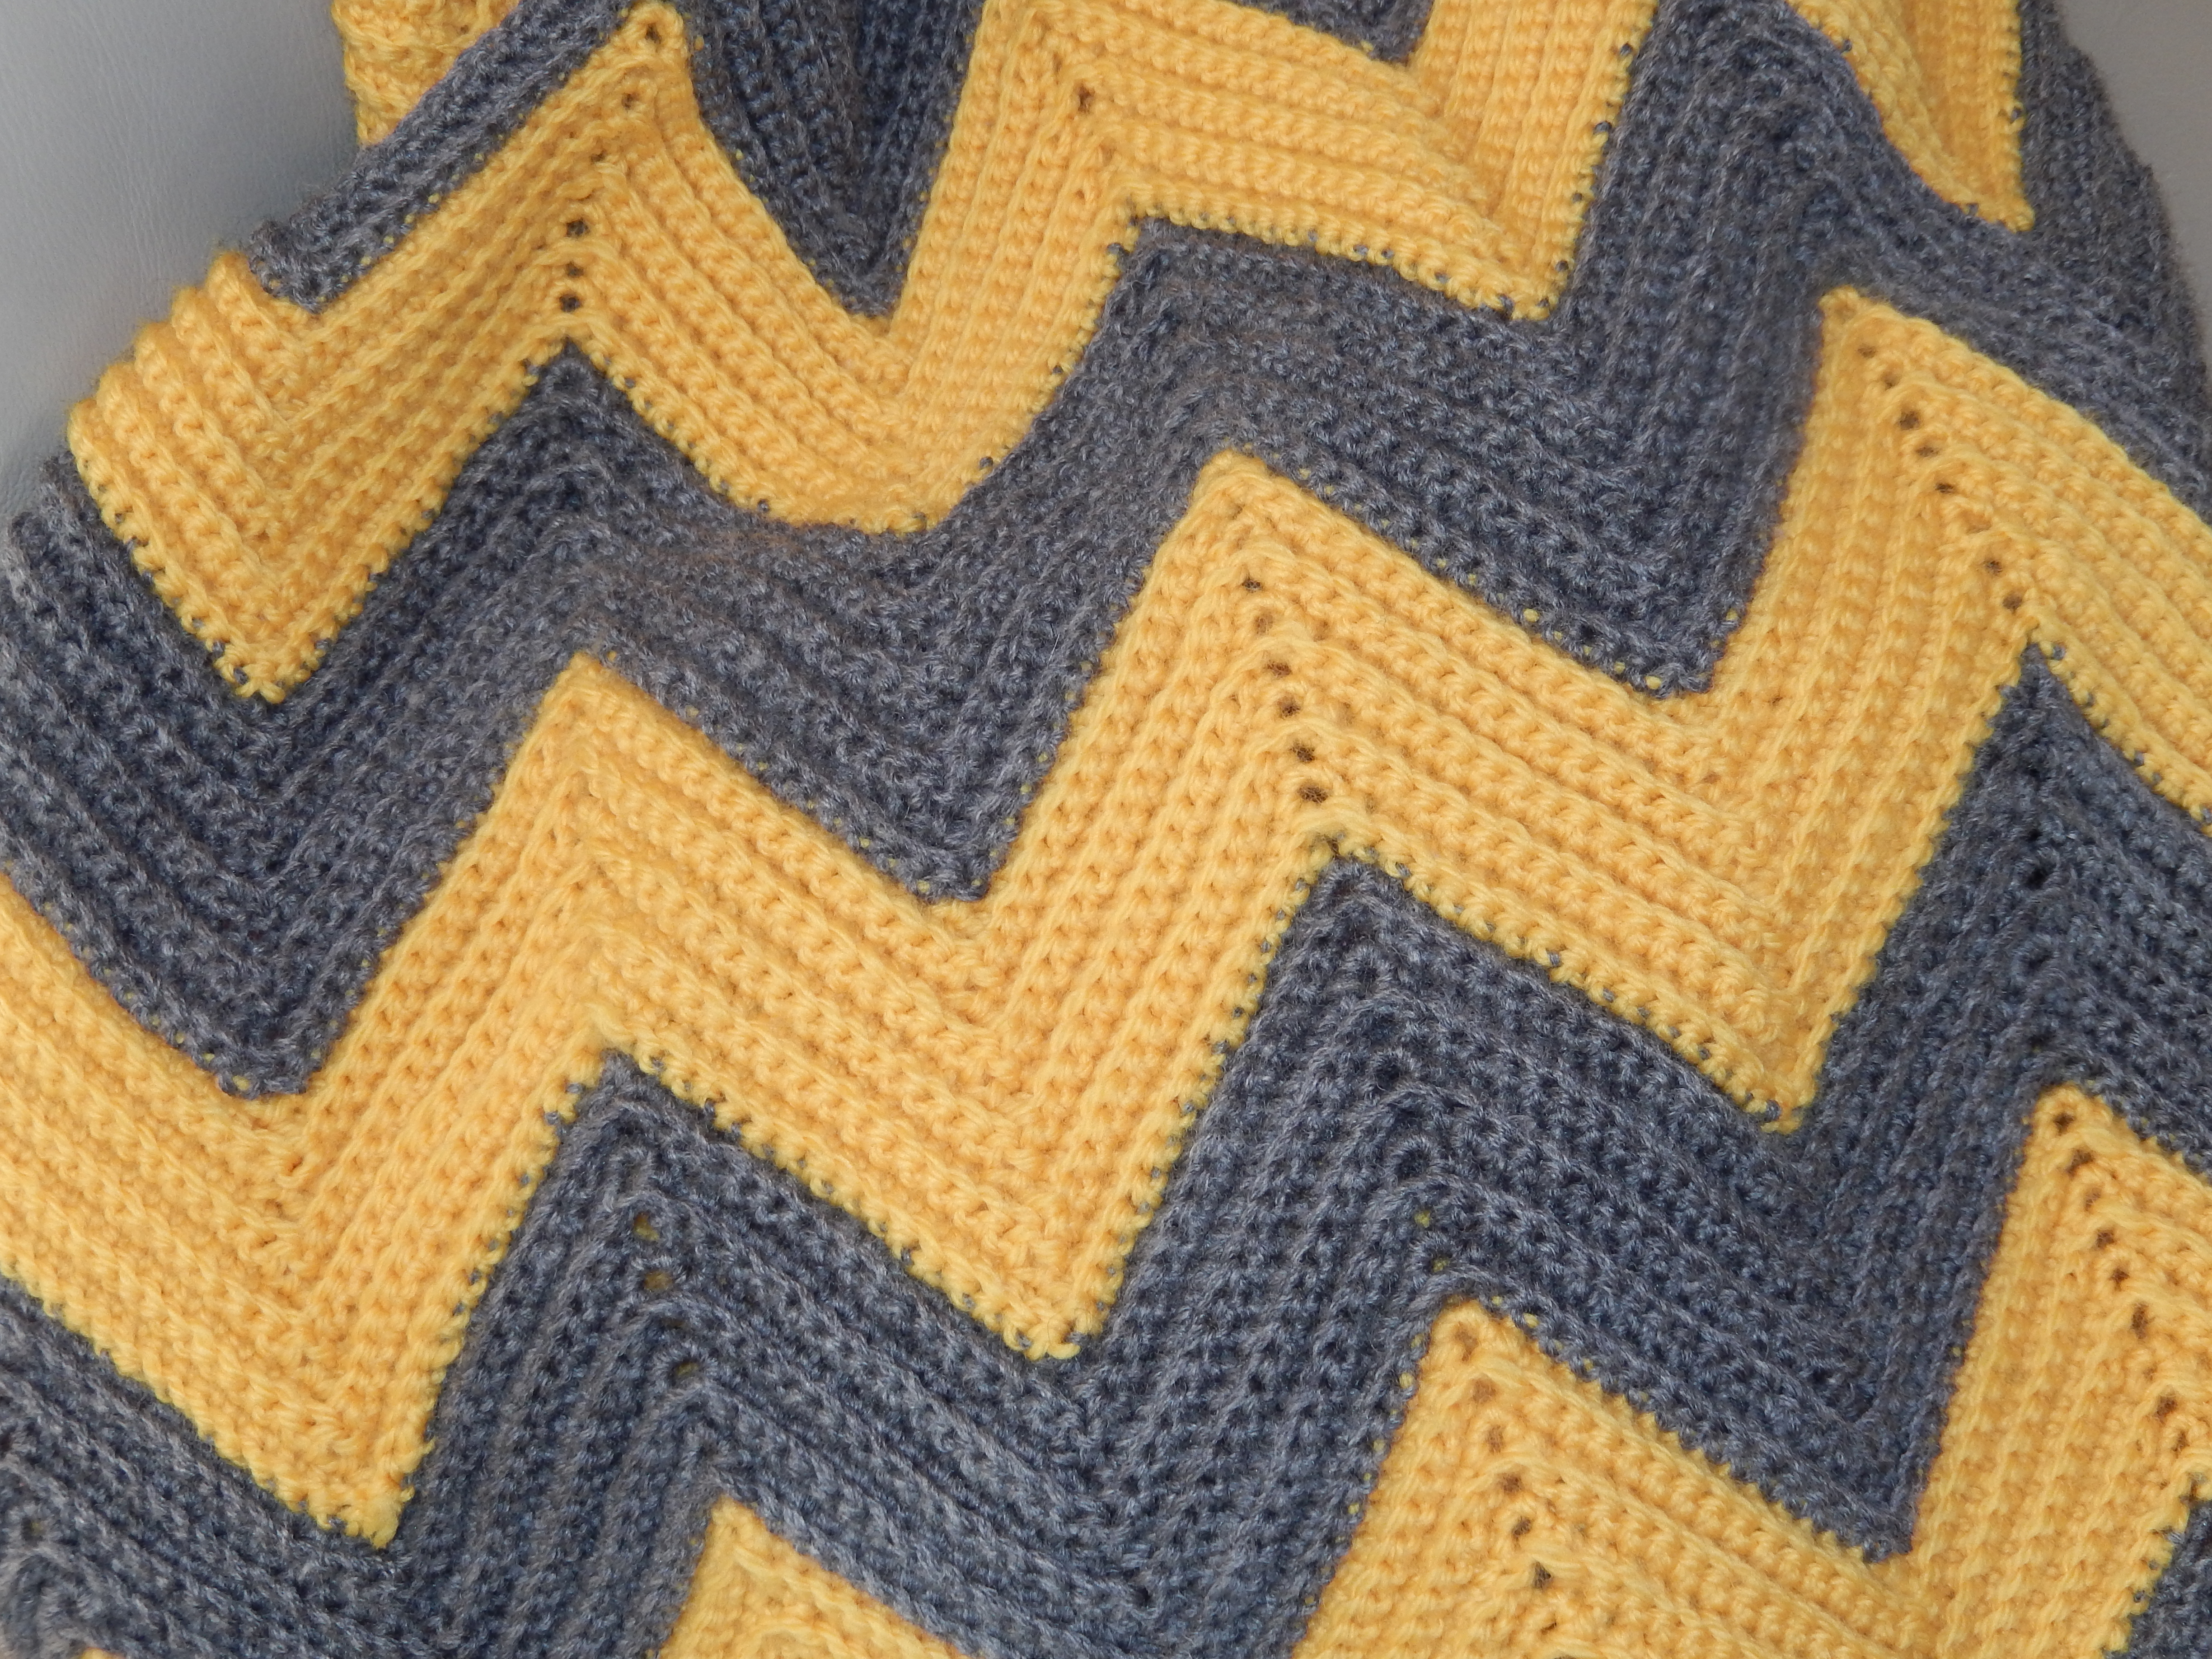 Crochet Patterns Chevron : The colours are actually a bit brighter than shown here but I think ...